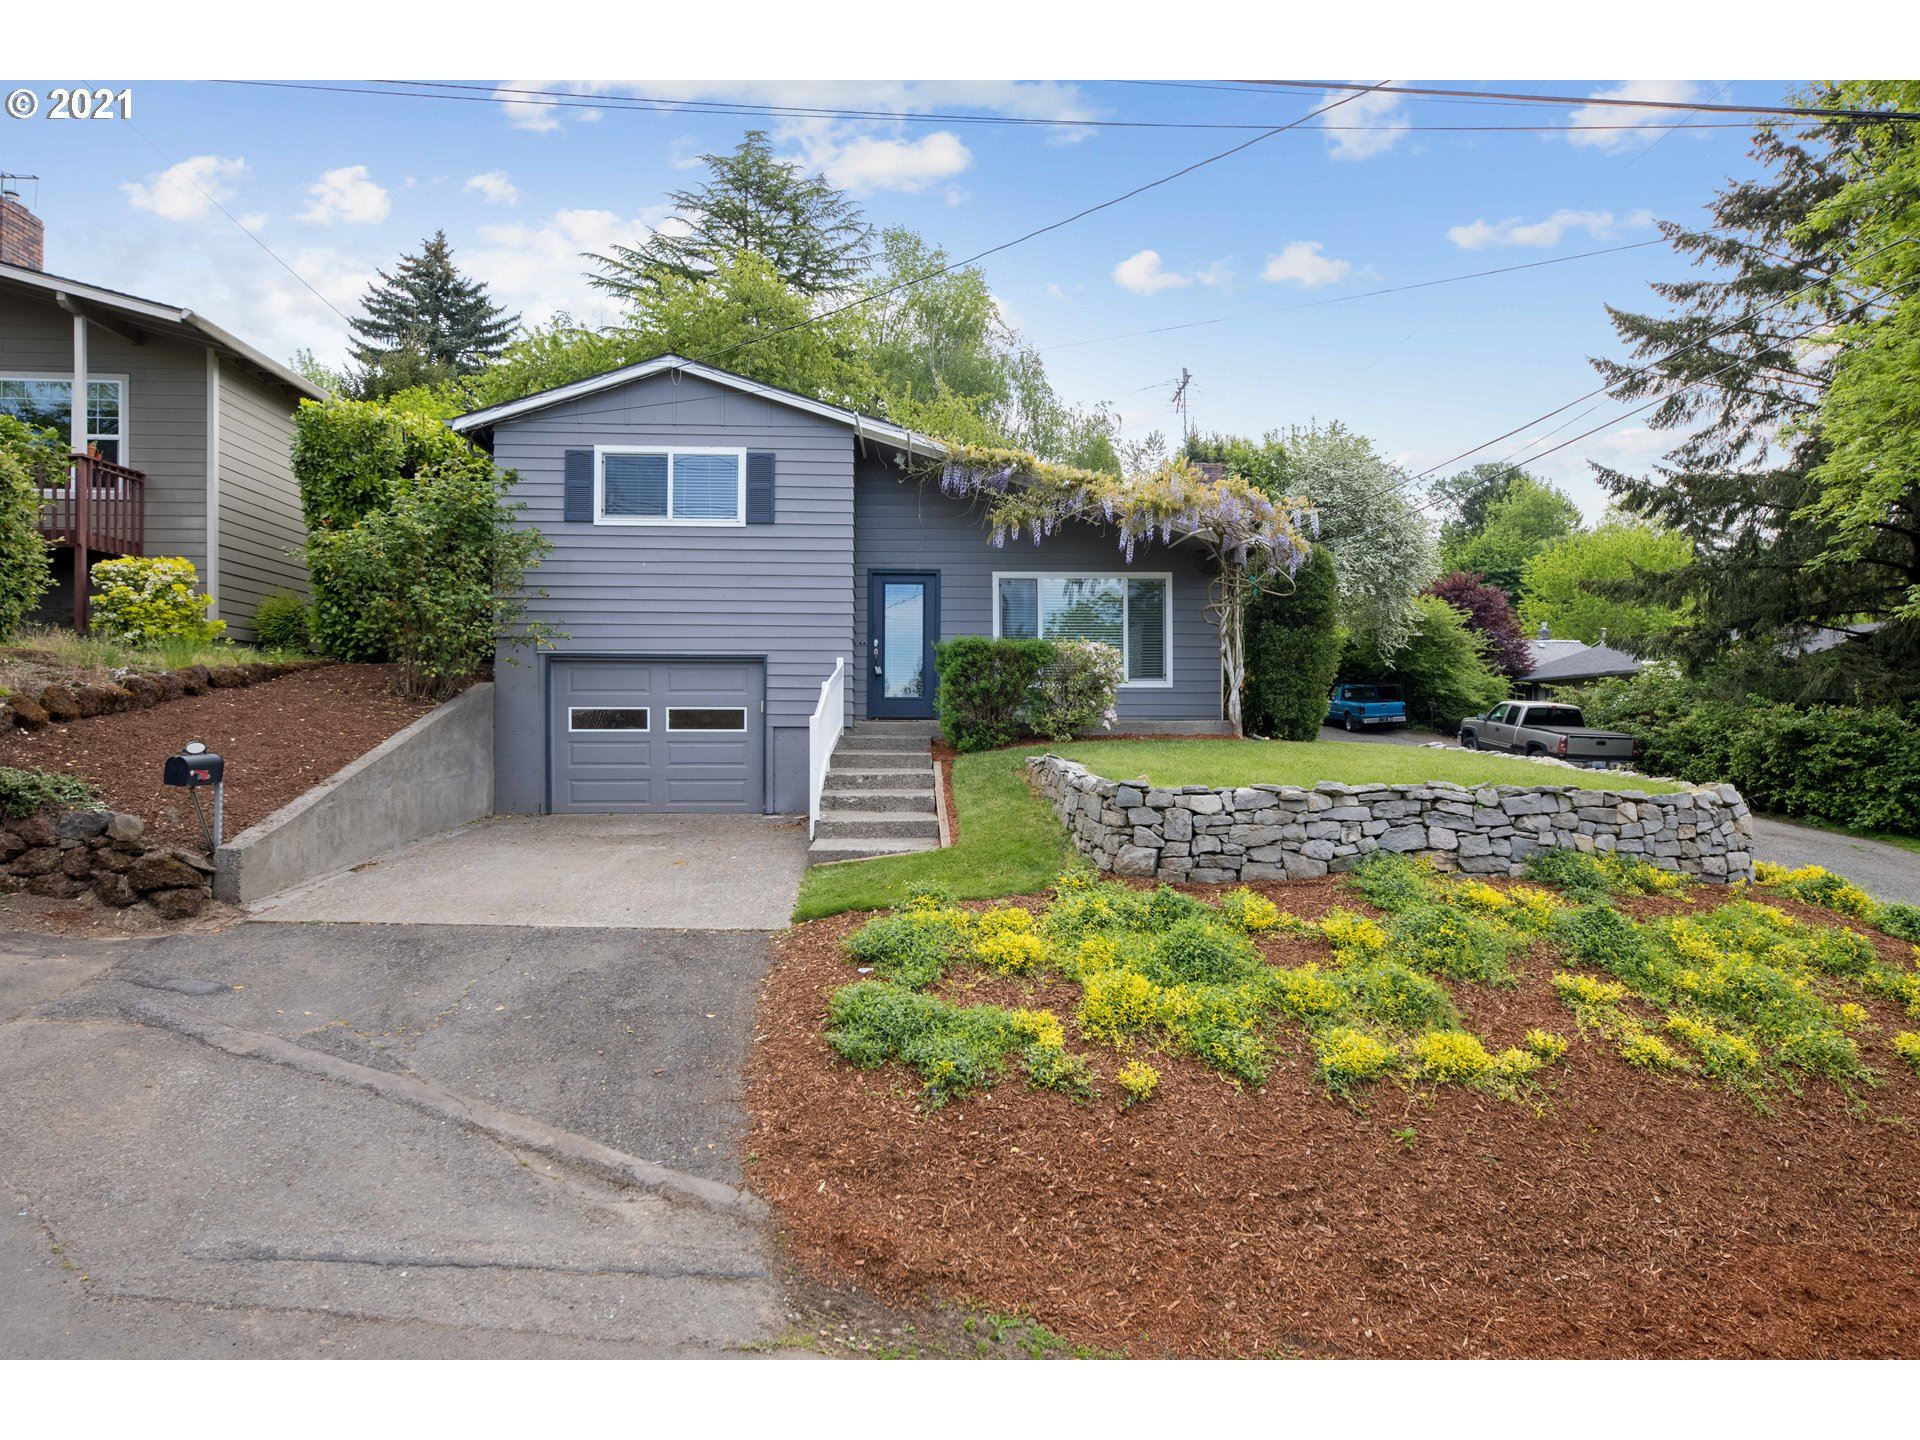 6930 SW 36TH AVE, Portland, OR 97219 - MLS#: 21697859